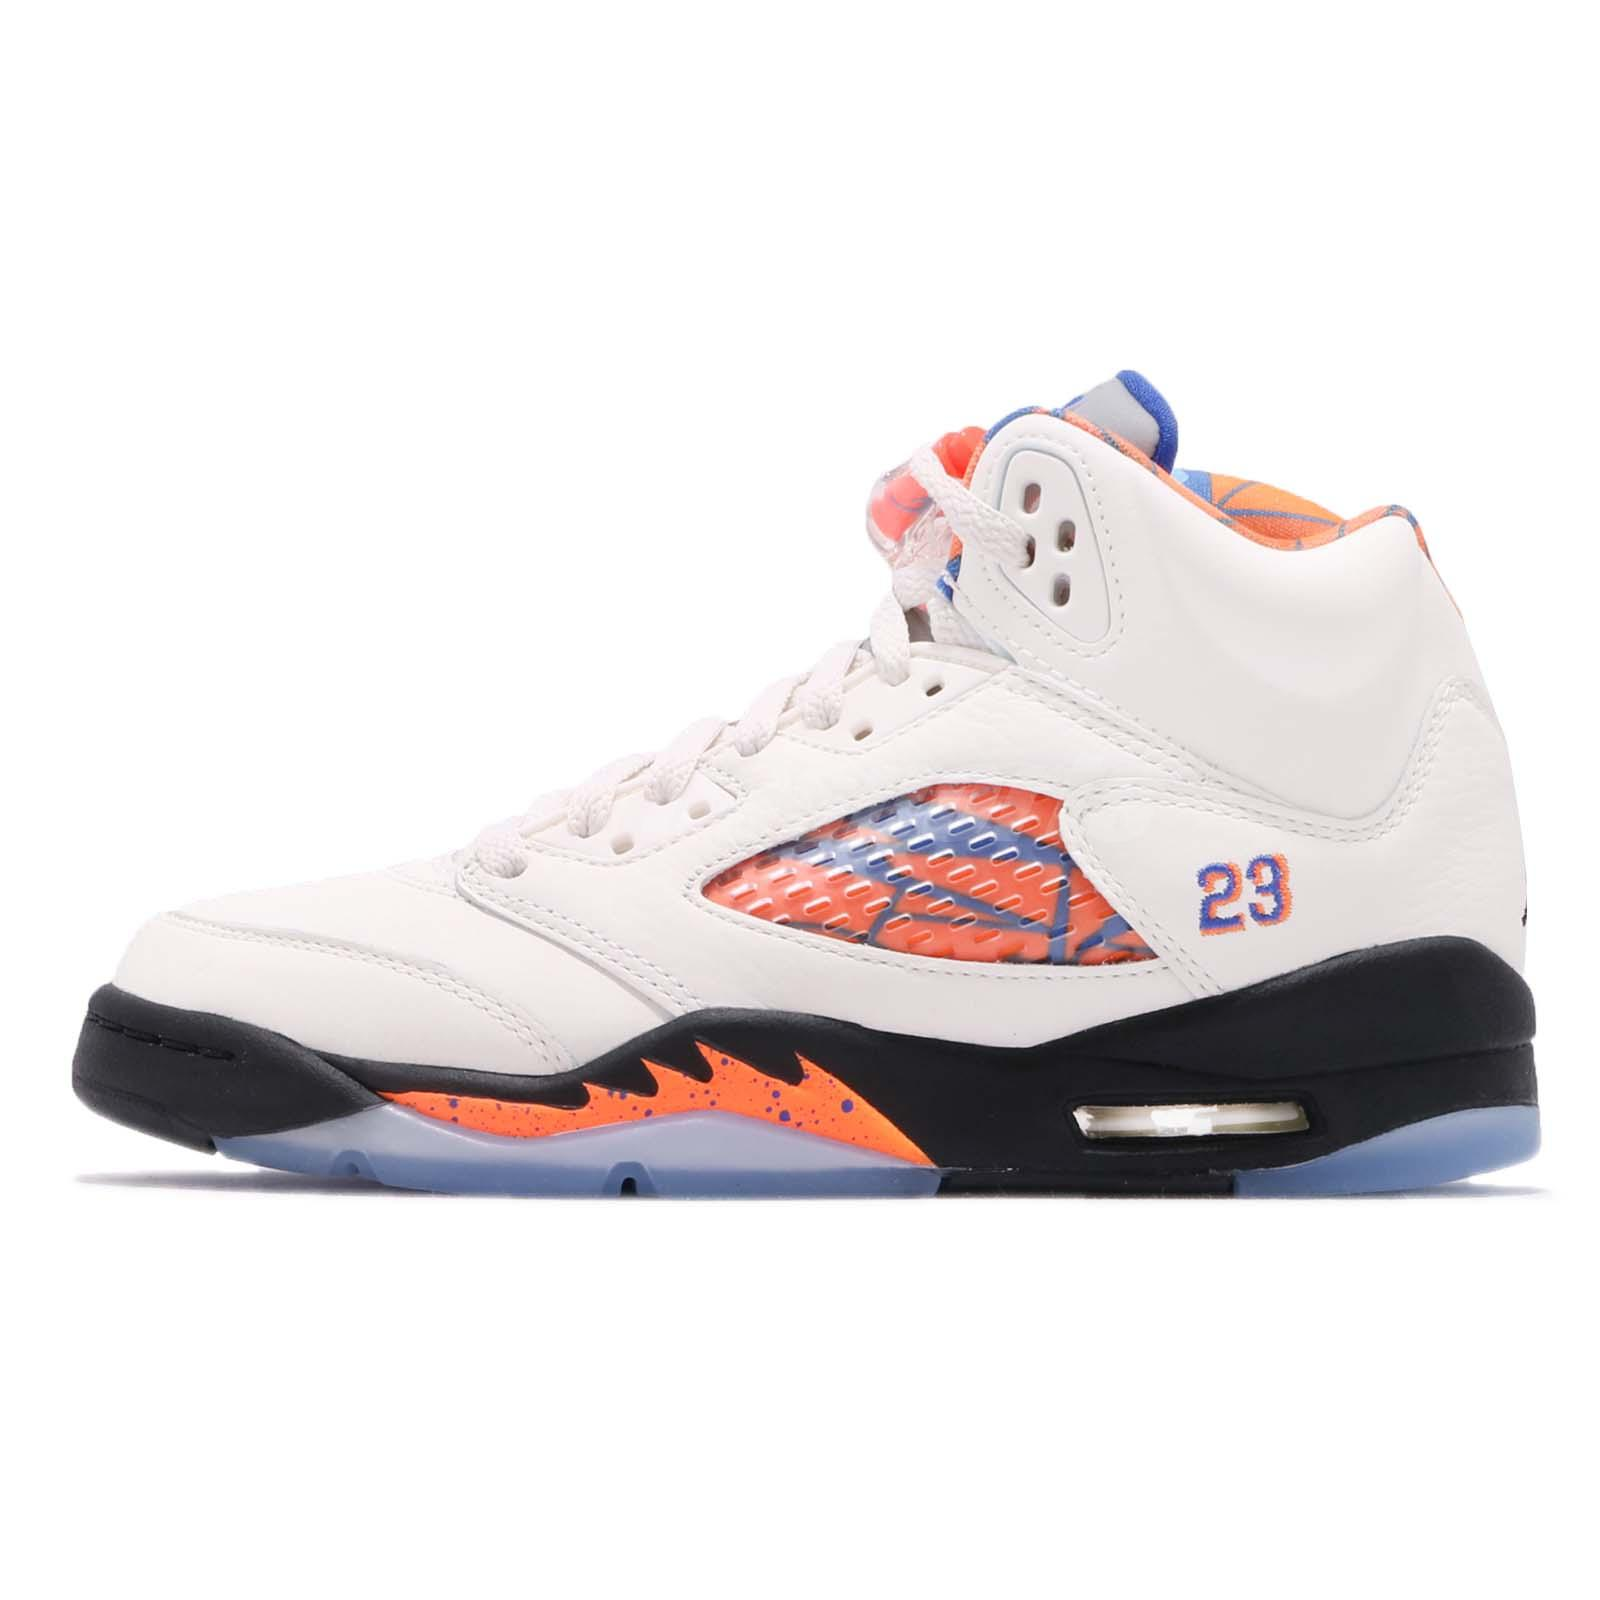 df825c01c249aa ... usa nike air jordan 5 retro gs v aj5 international flight kid women  shoes 440888 148